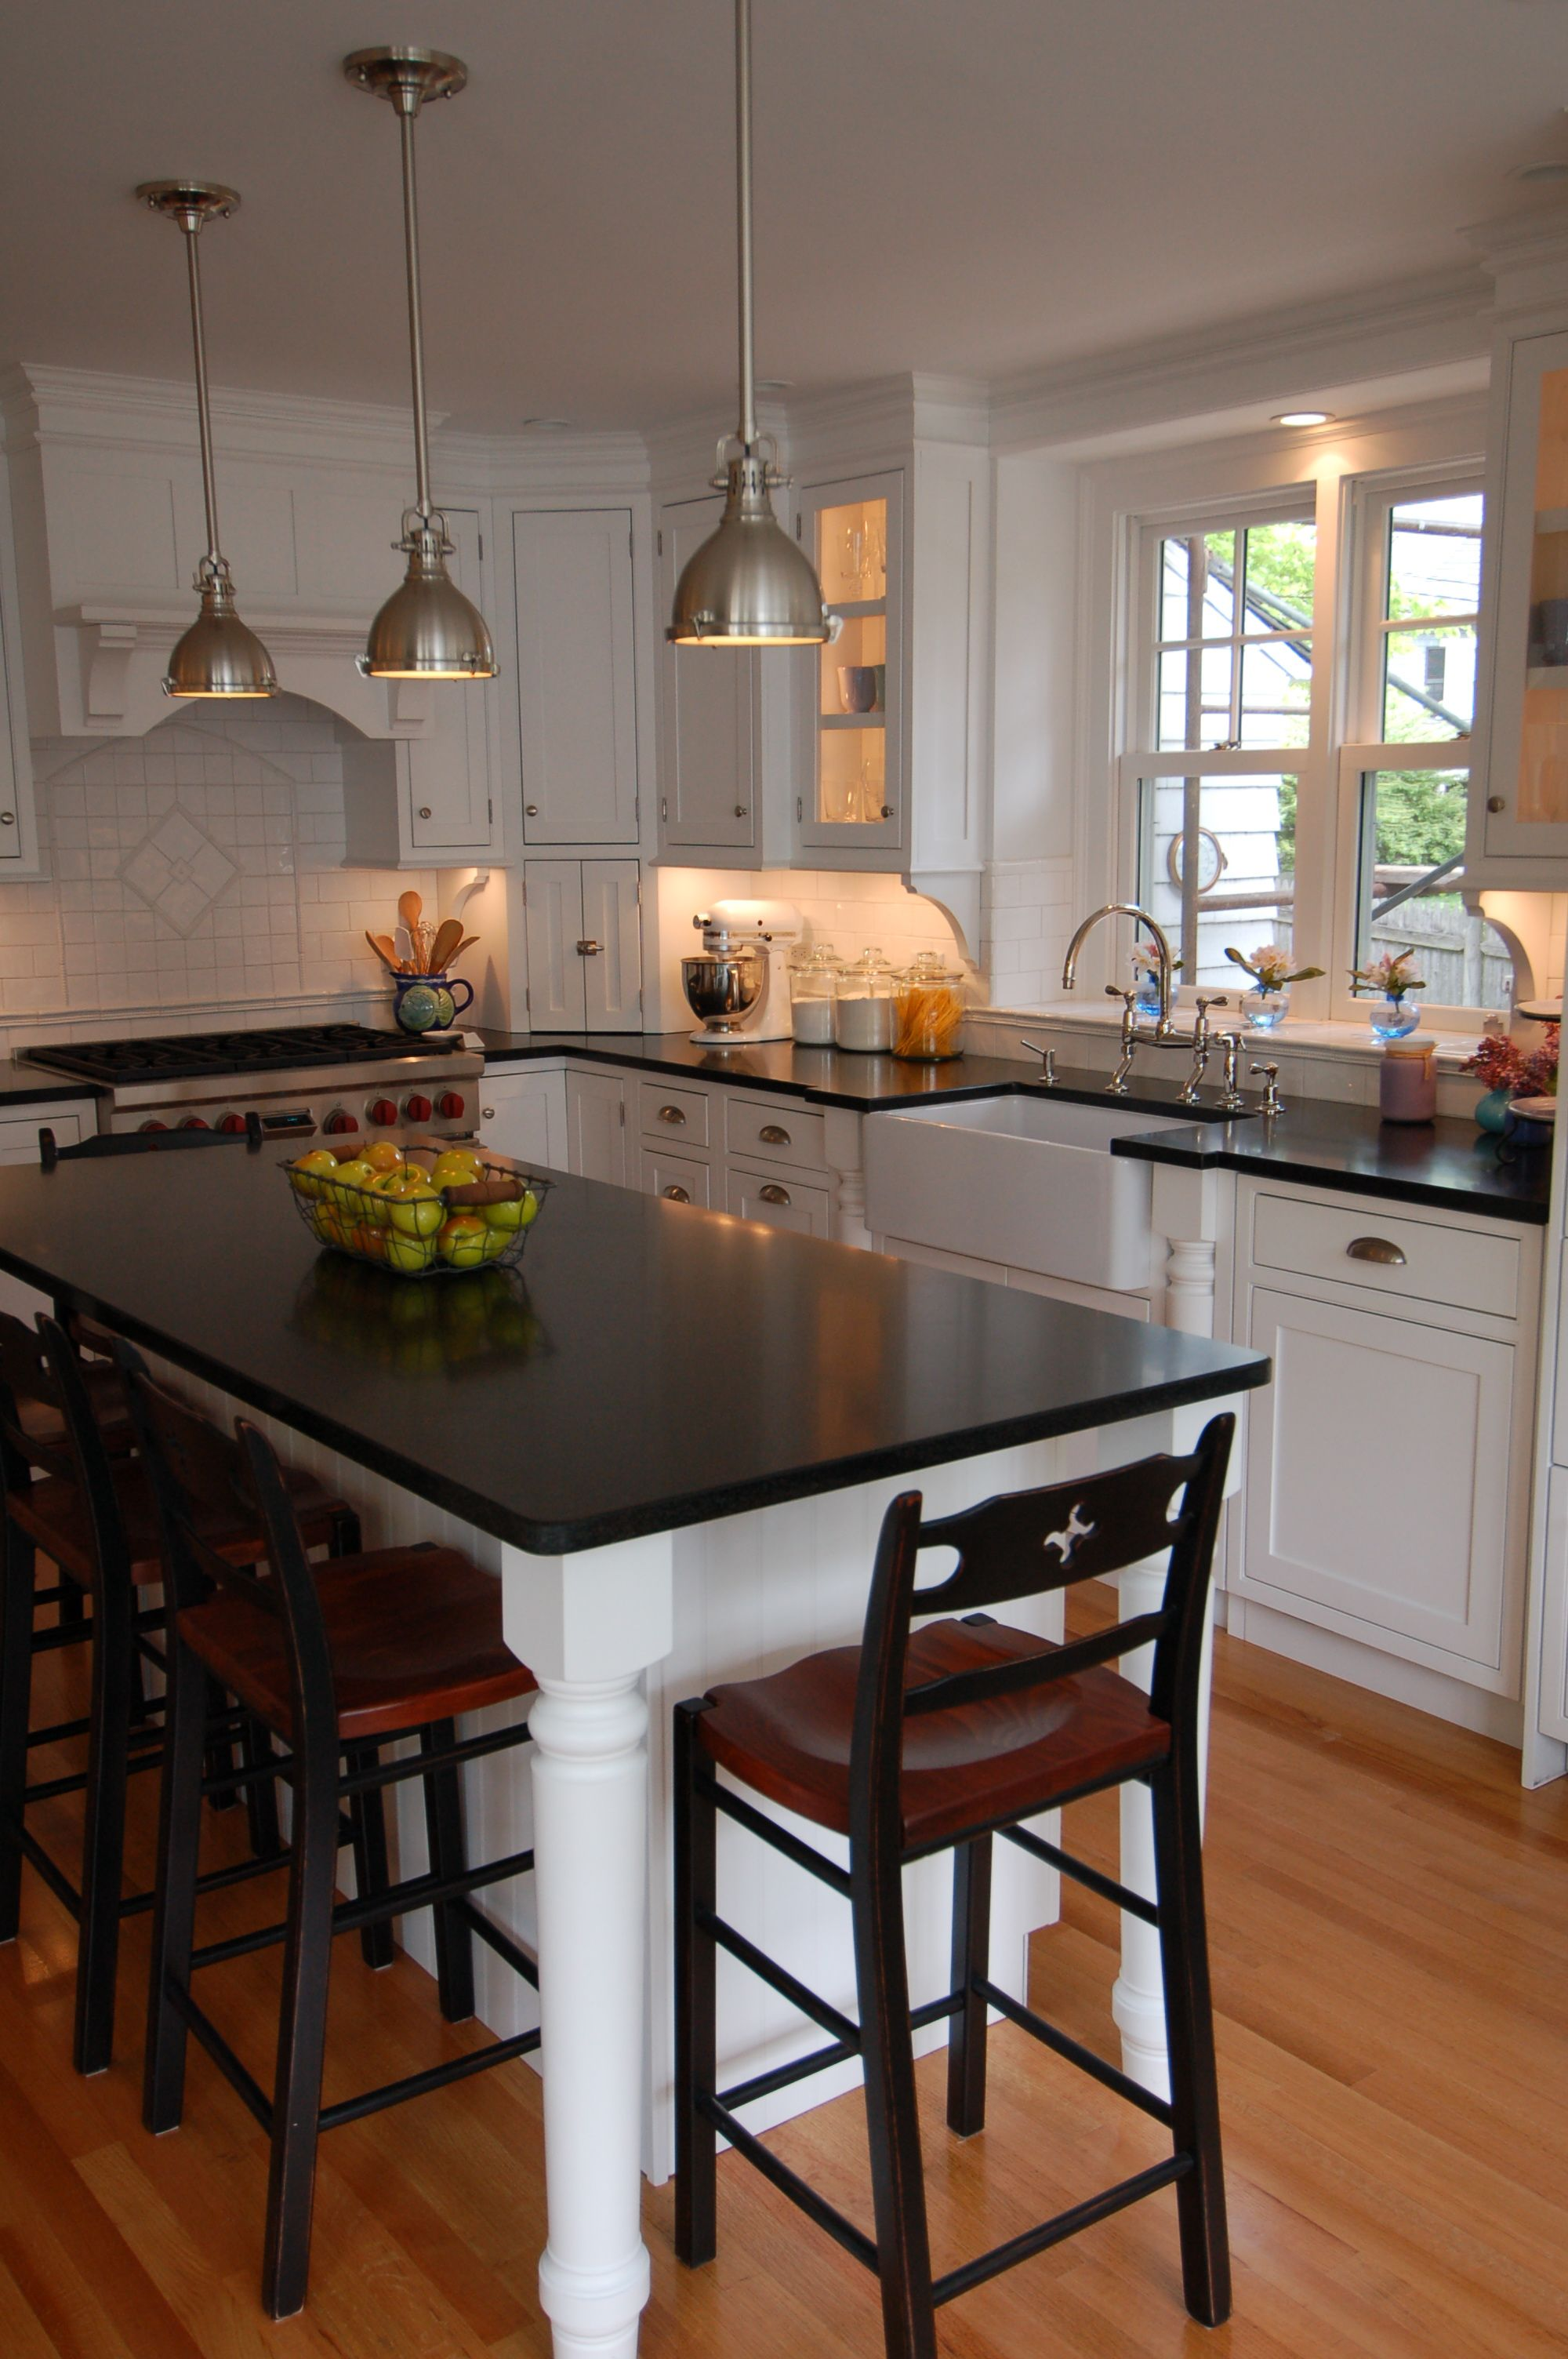 sink and stove location with island and lamps perfect kitchen design small on kitchen island ideas small layout id=41272